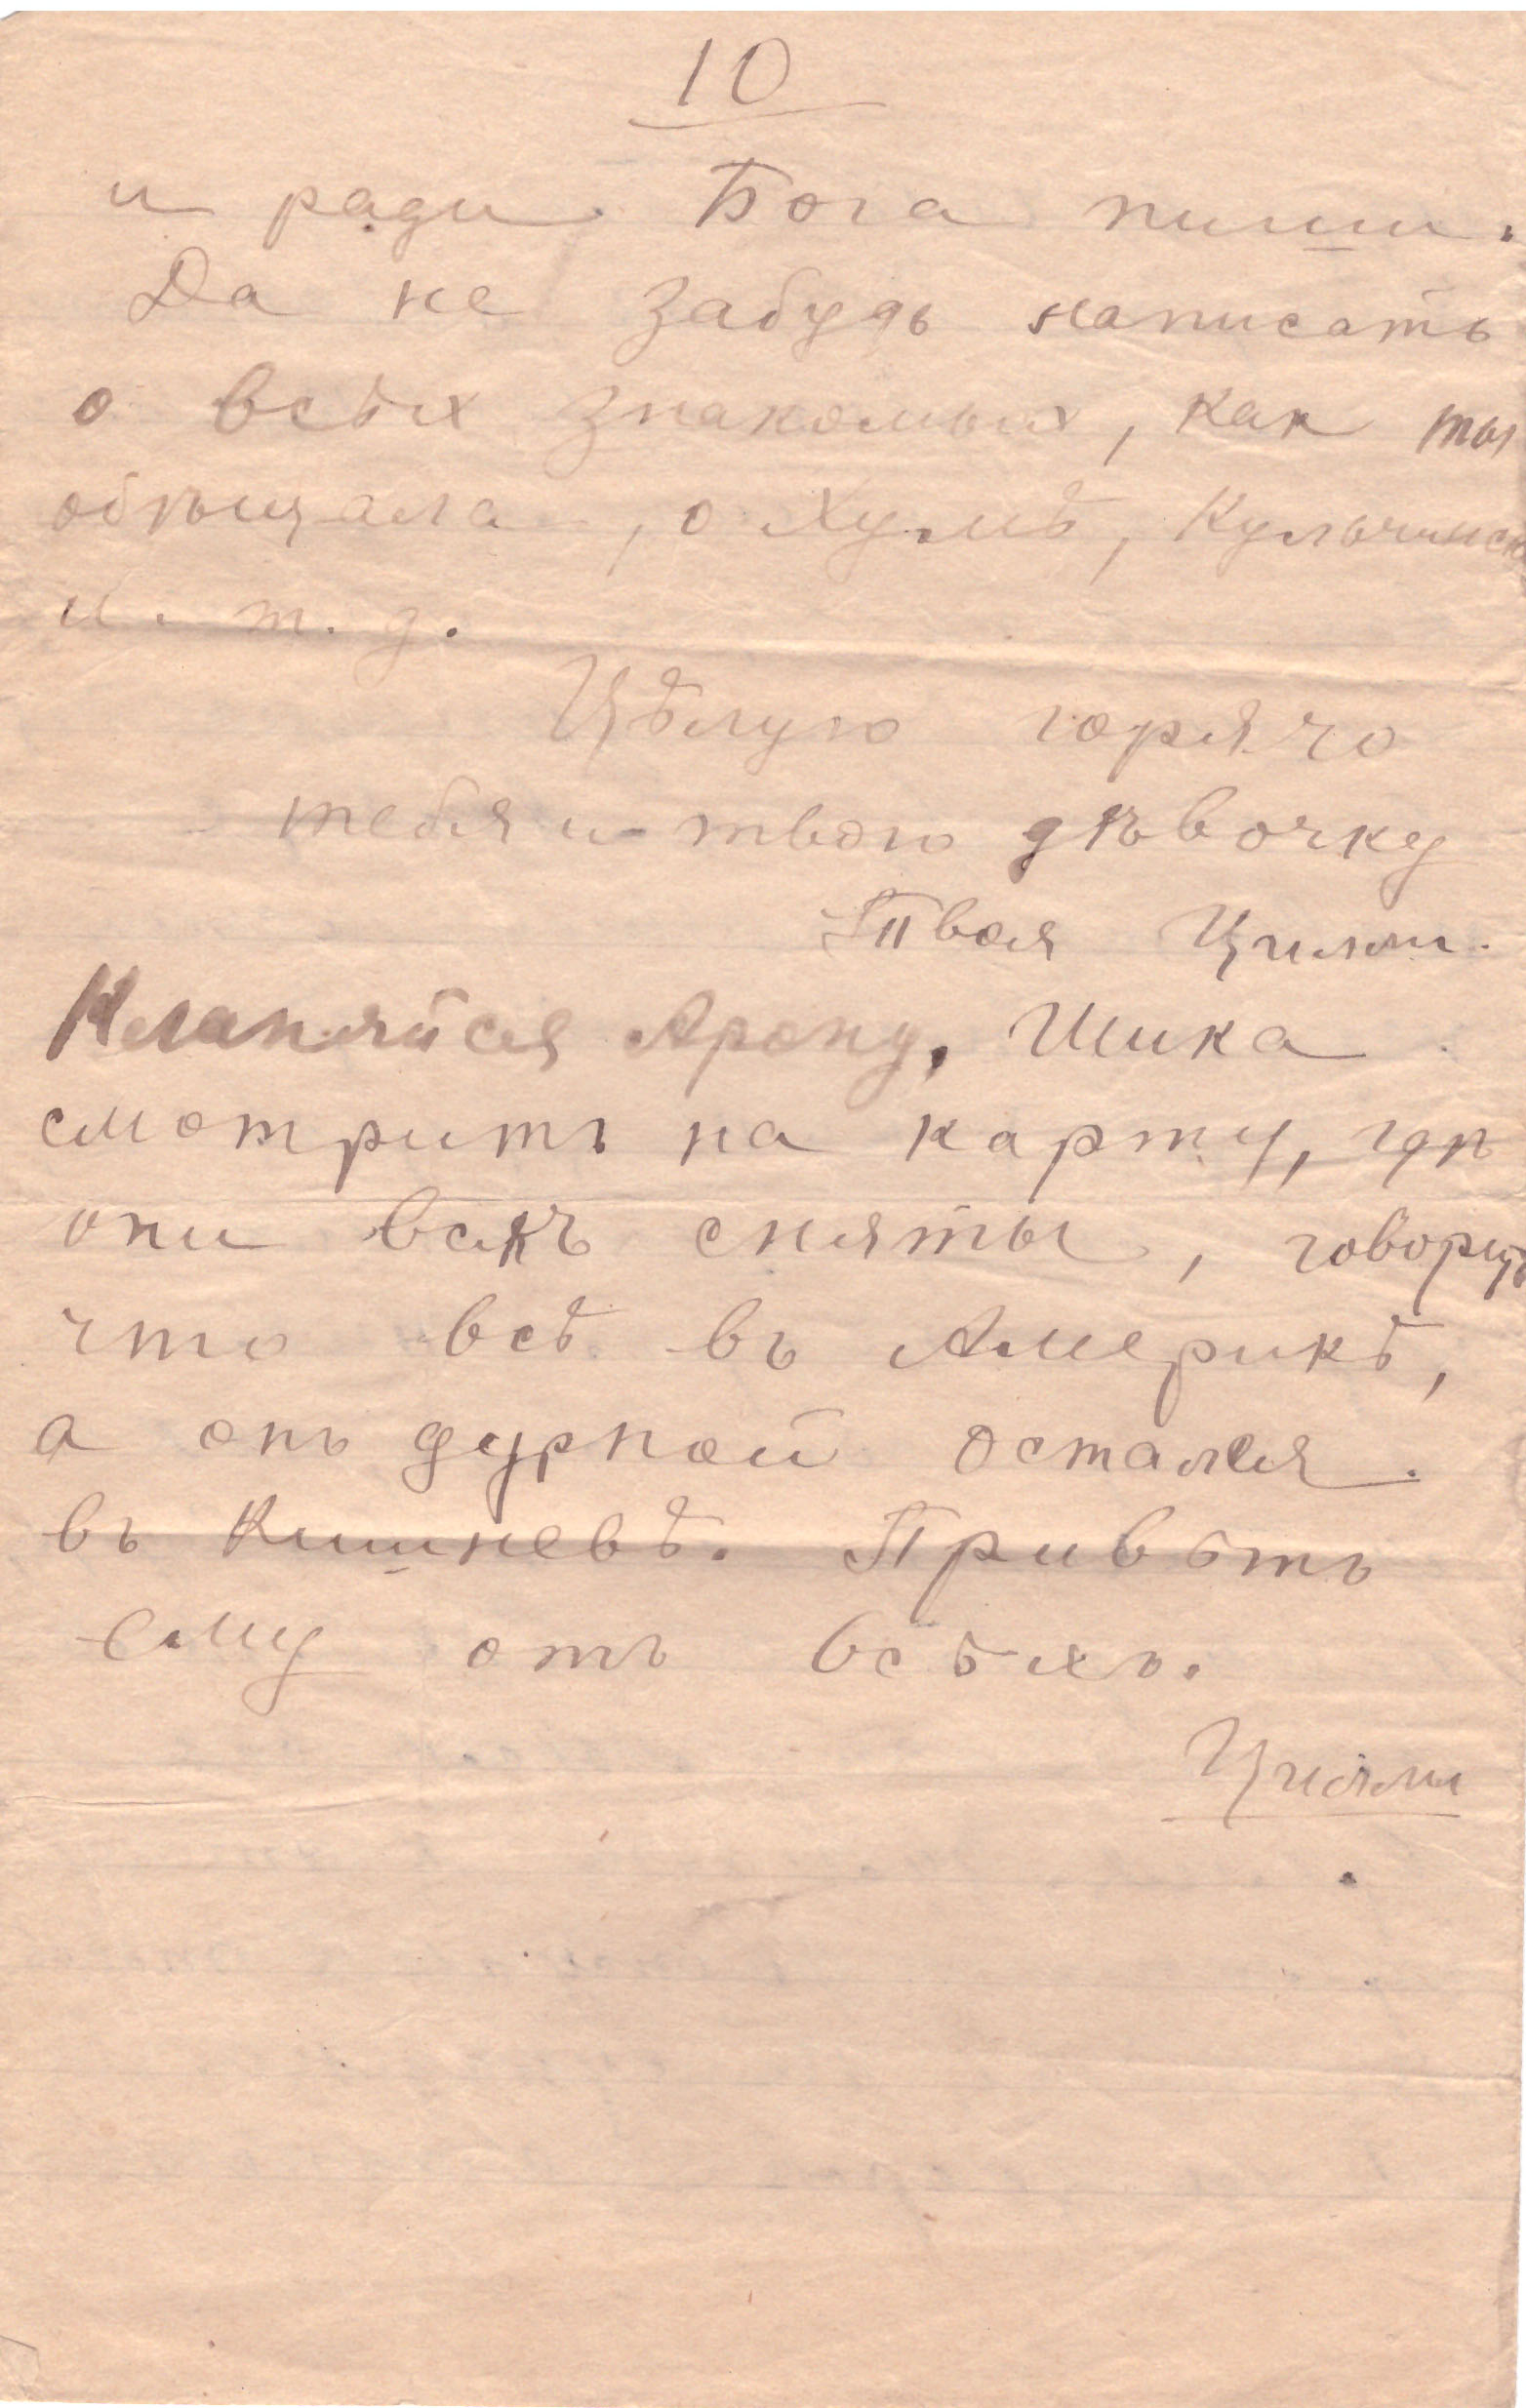 Letter to Poline from Tsillie July 5, 1920 p10